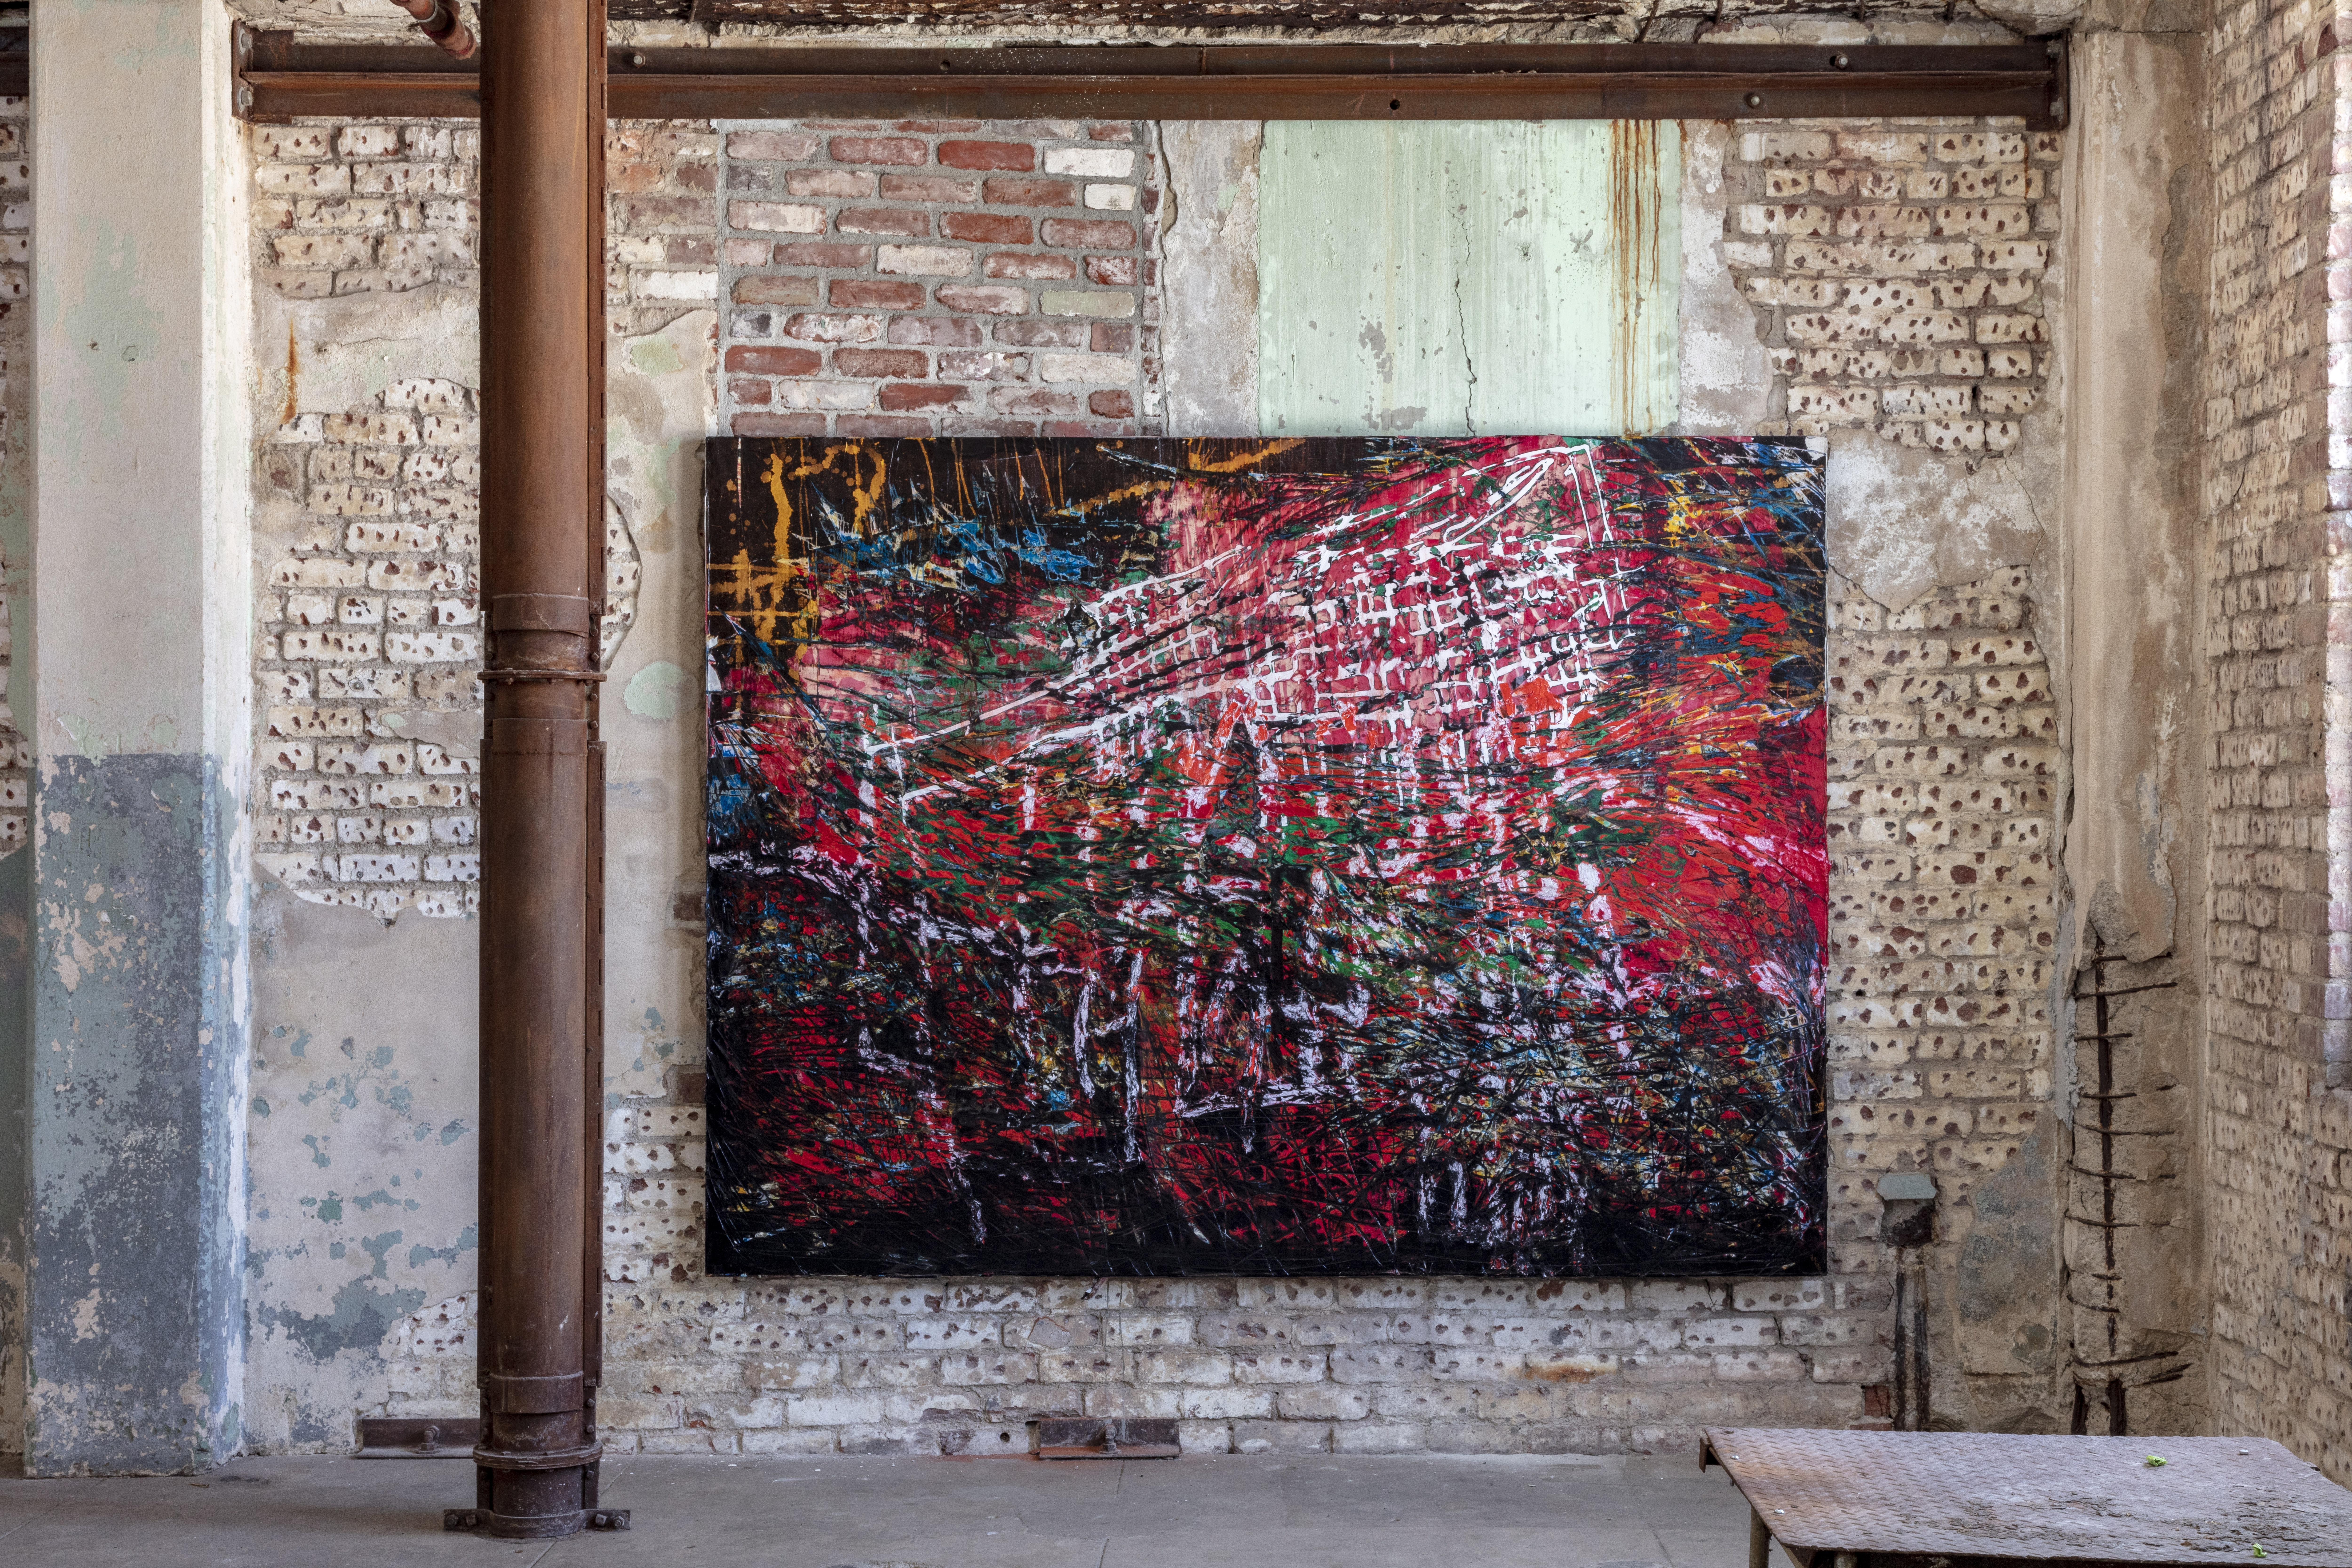 Q3